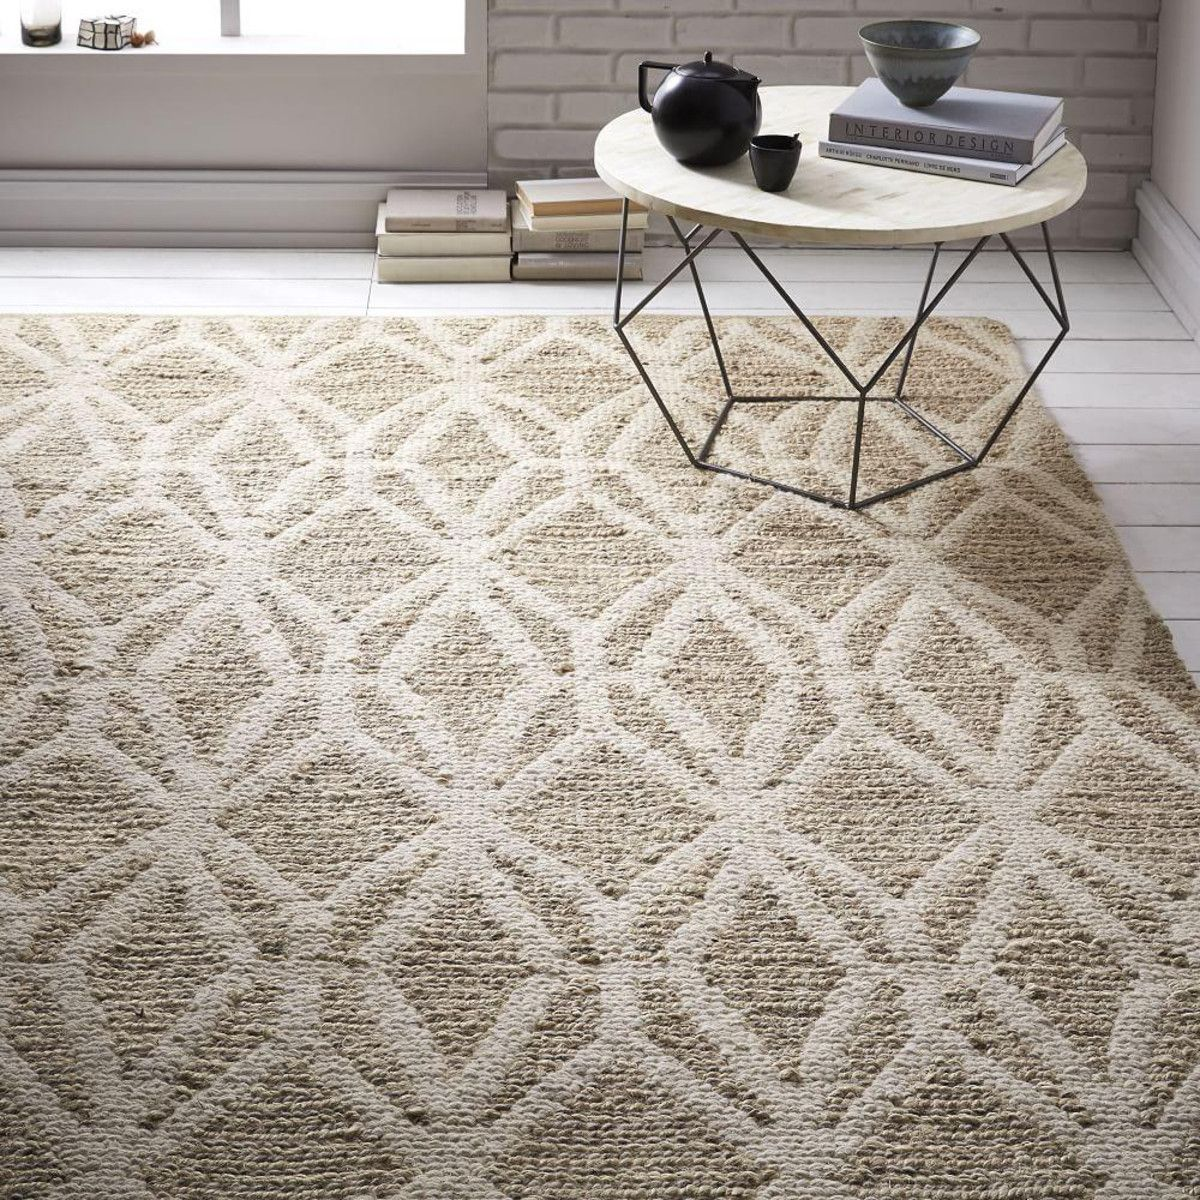 Modern Furniture Home Decor Home Accessories West Elm Jute Rug Rug Styles Rugs